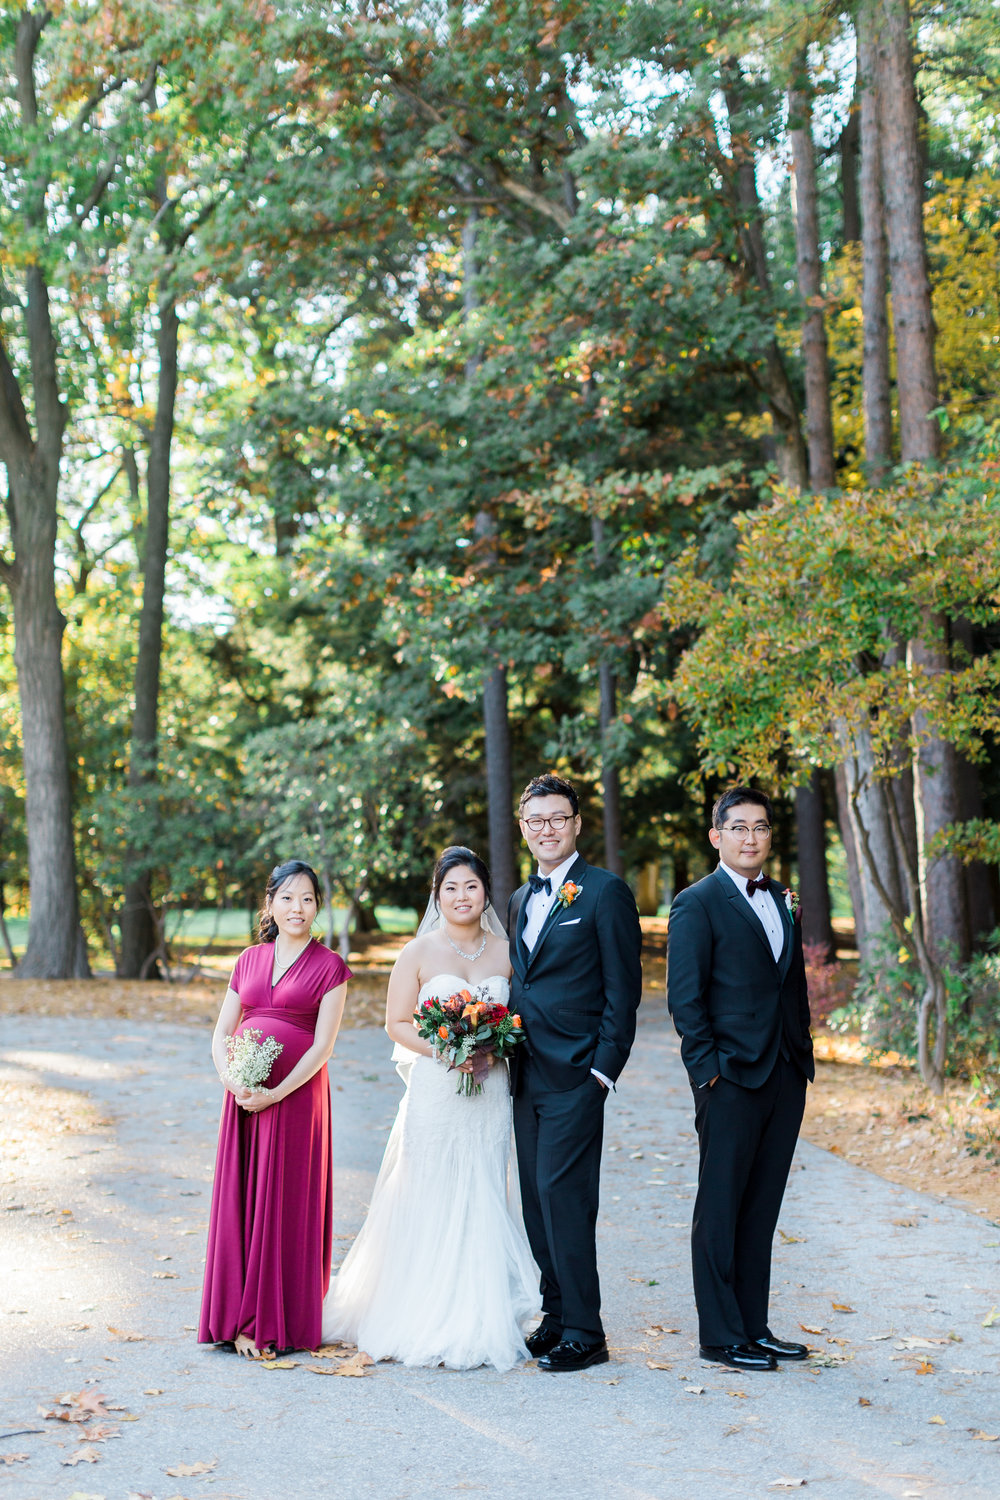 Toronto Fine Art Photographer - Toronto Hunt Club Wedding - Bridal Party Portraits-12.jpg